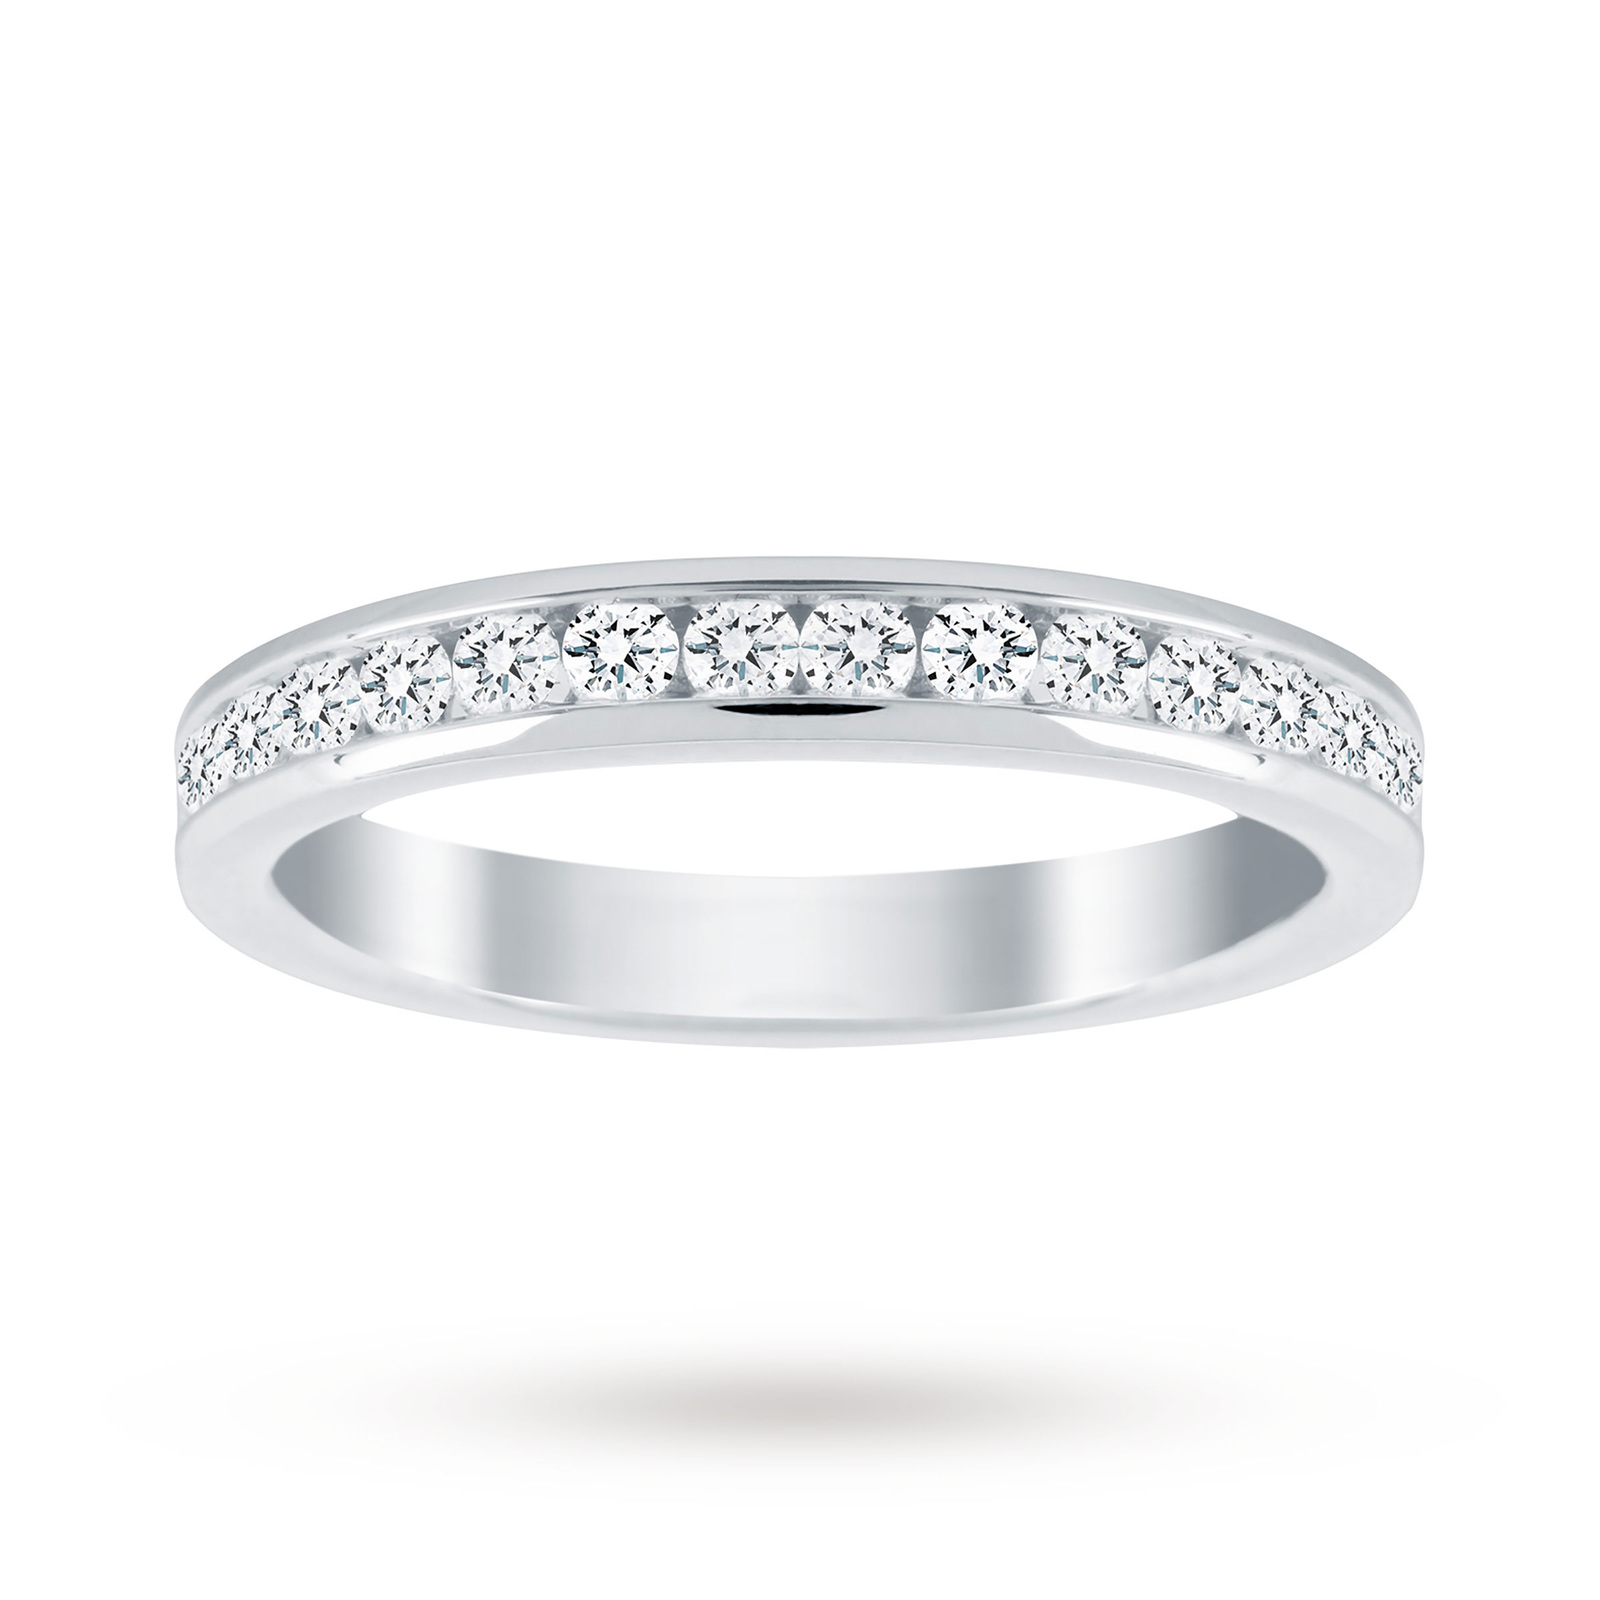 18ct White Gold 0.50cttw Diamond Half Eternity Ring - Ring Size N